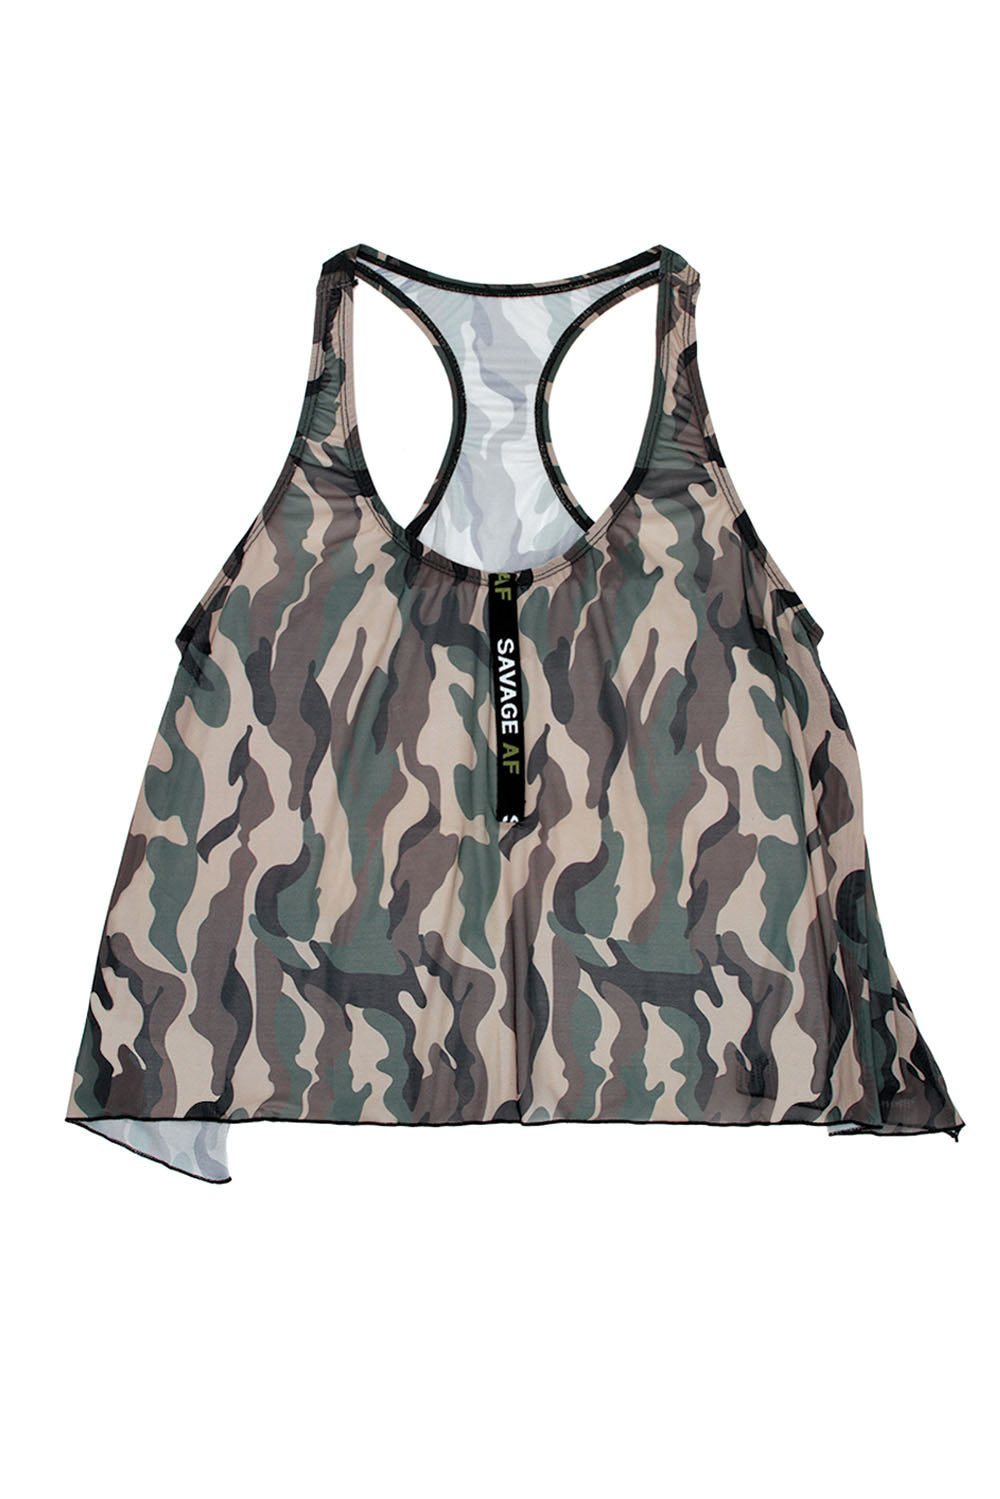 Savage Af Swing Top - Forest Camo - M/l - Fantasy Lingerie -  Los Angeles Lingerie